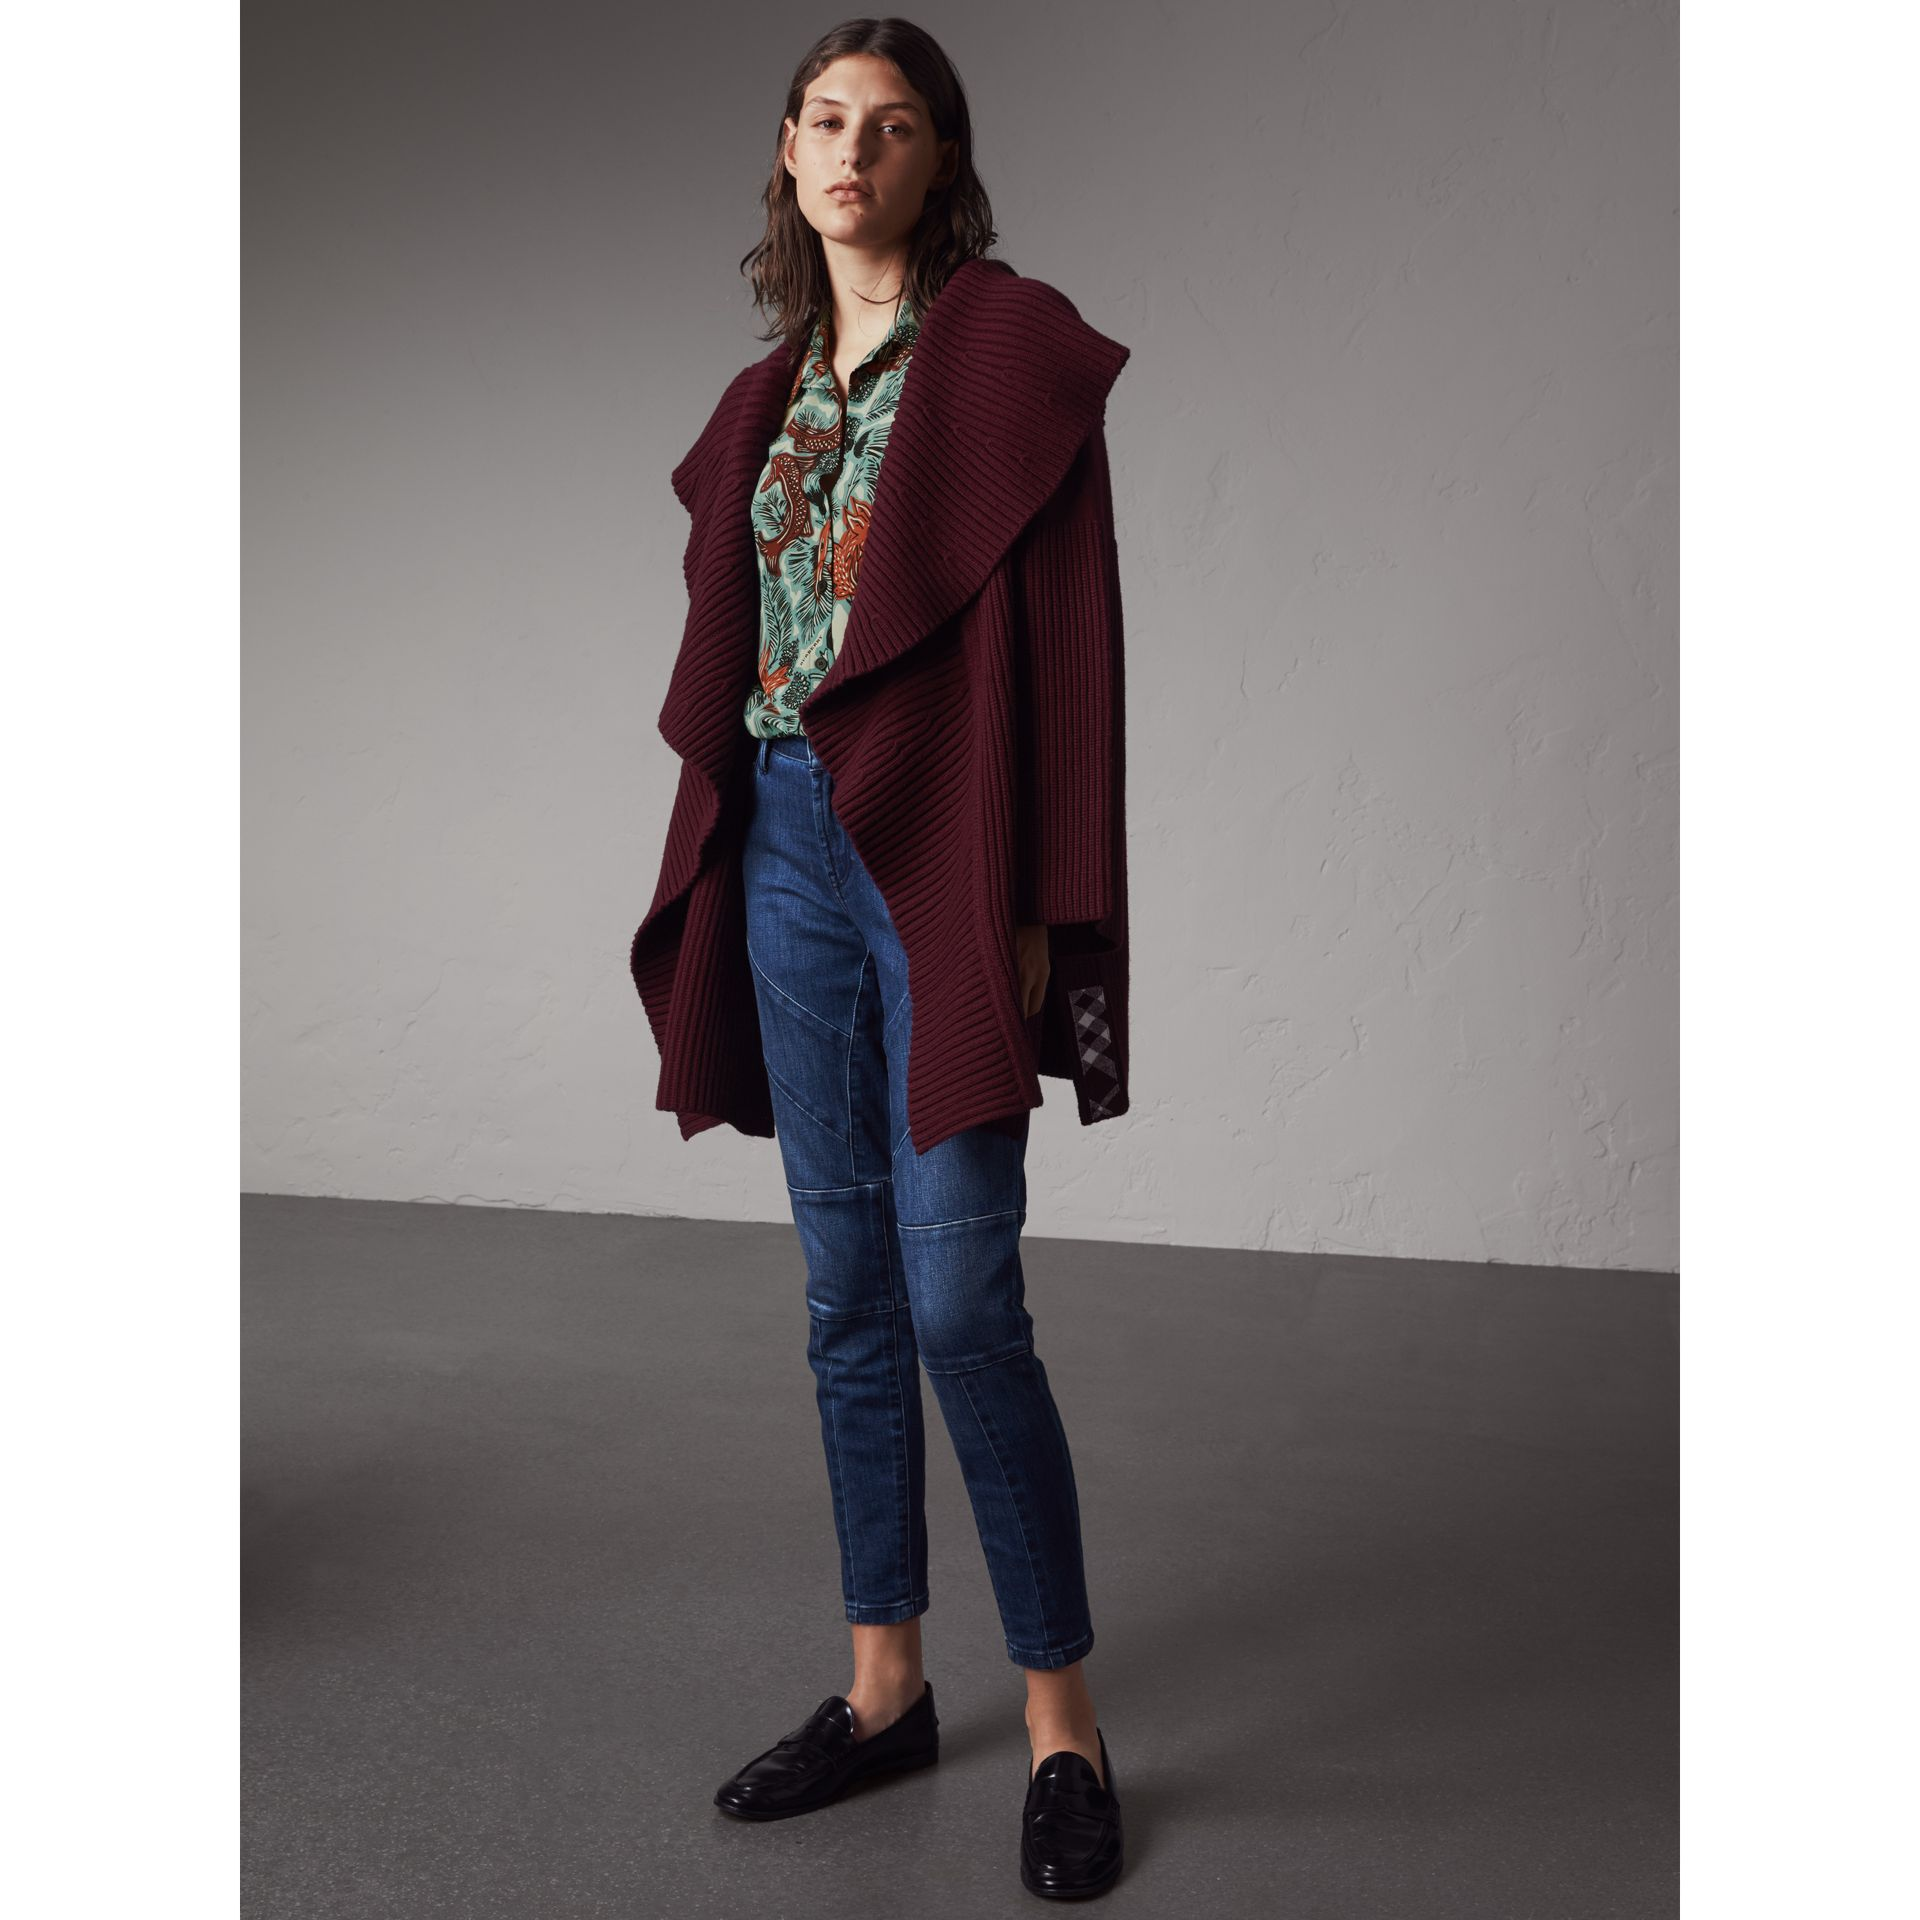 Ribbed Wool Cashmere Cardigan Coat in Burgundy - Women | Burberry United States - gallery image 5